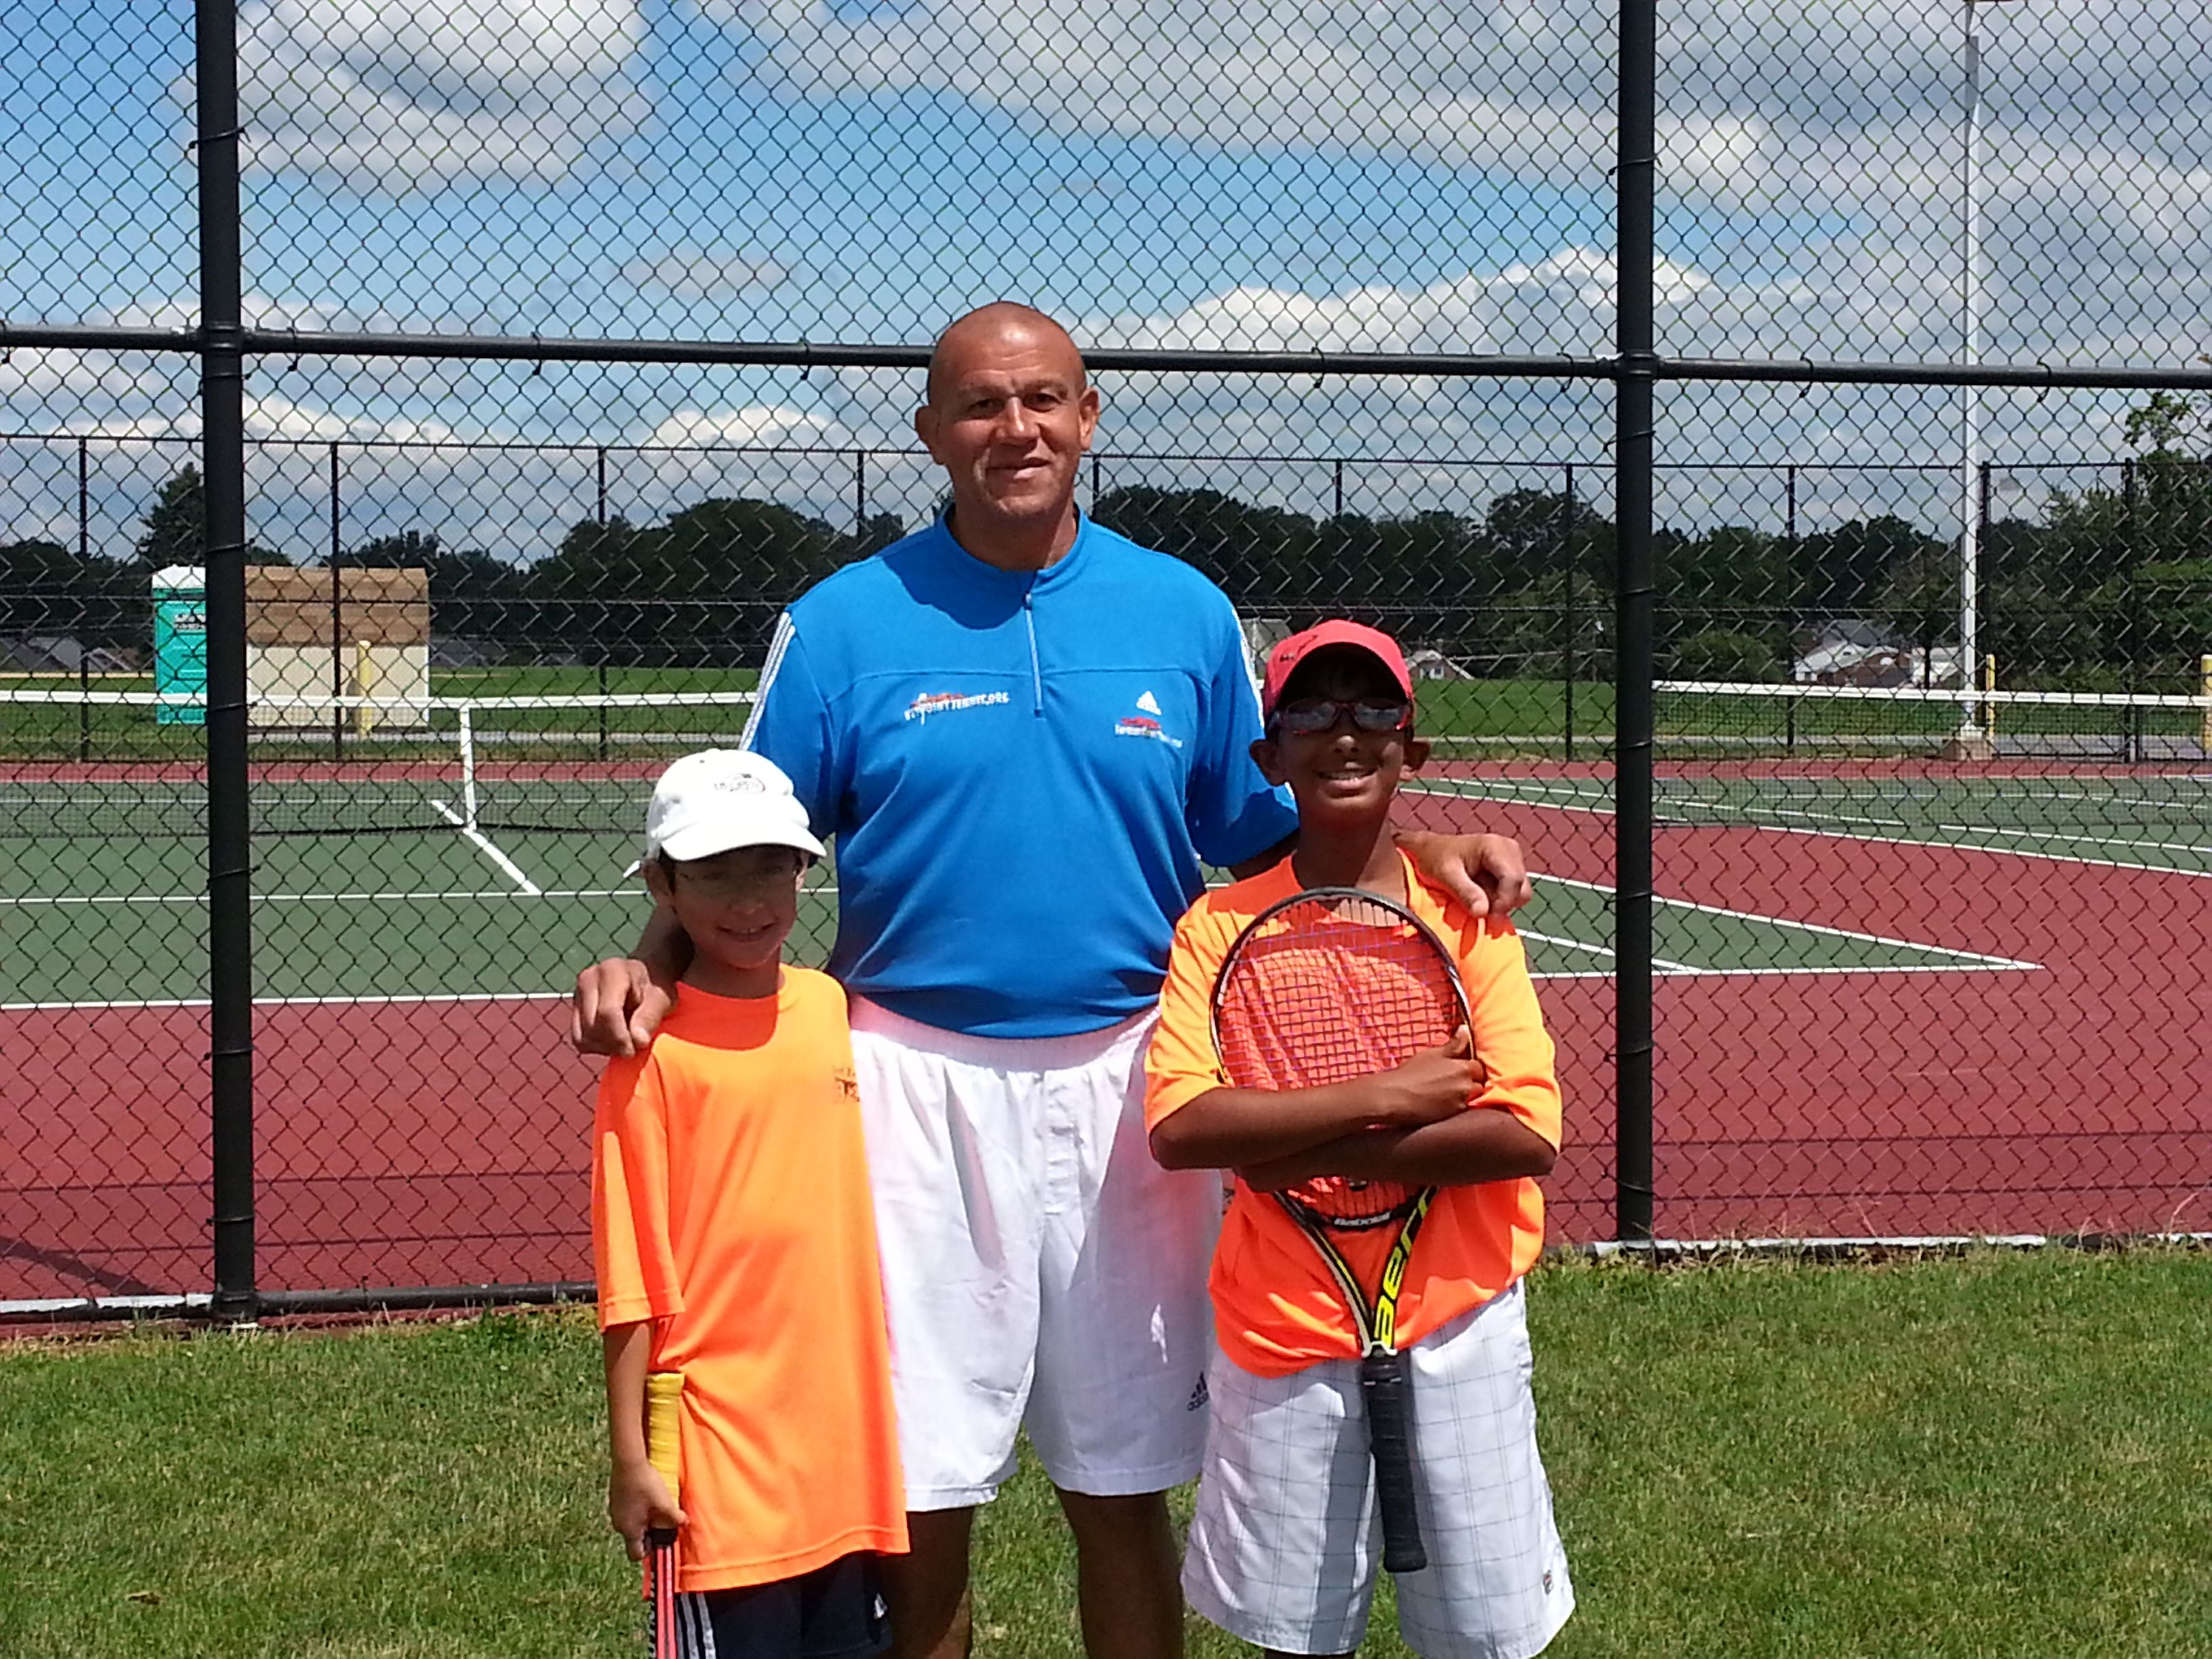 Delaware Academy youth participating in the Set Point Tennis Open